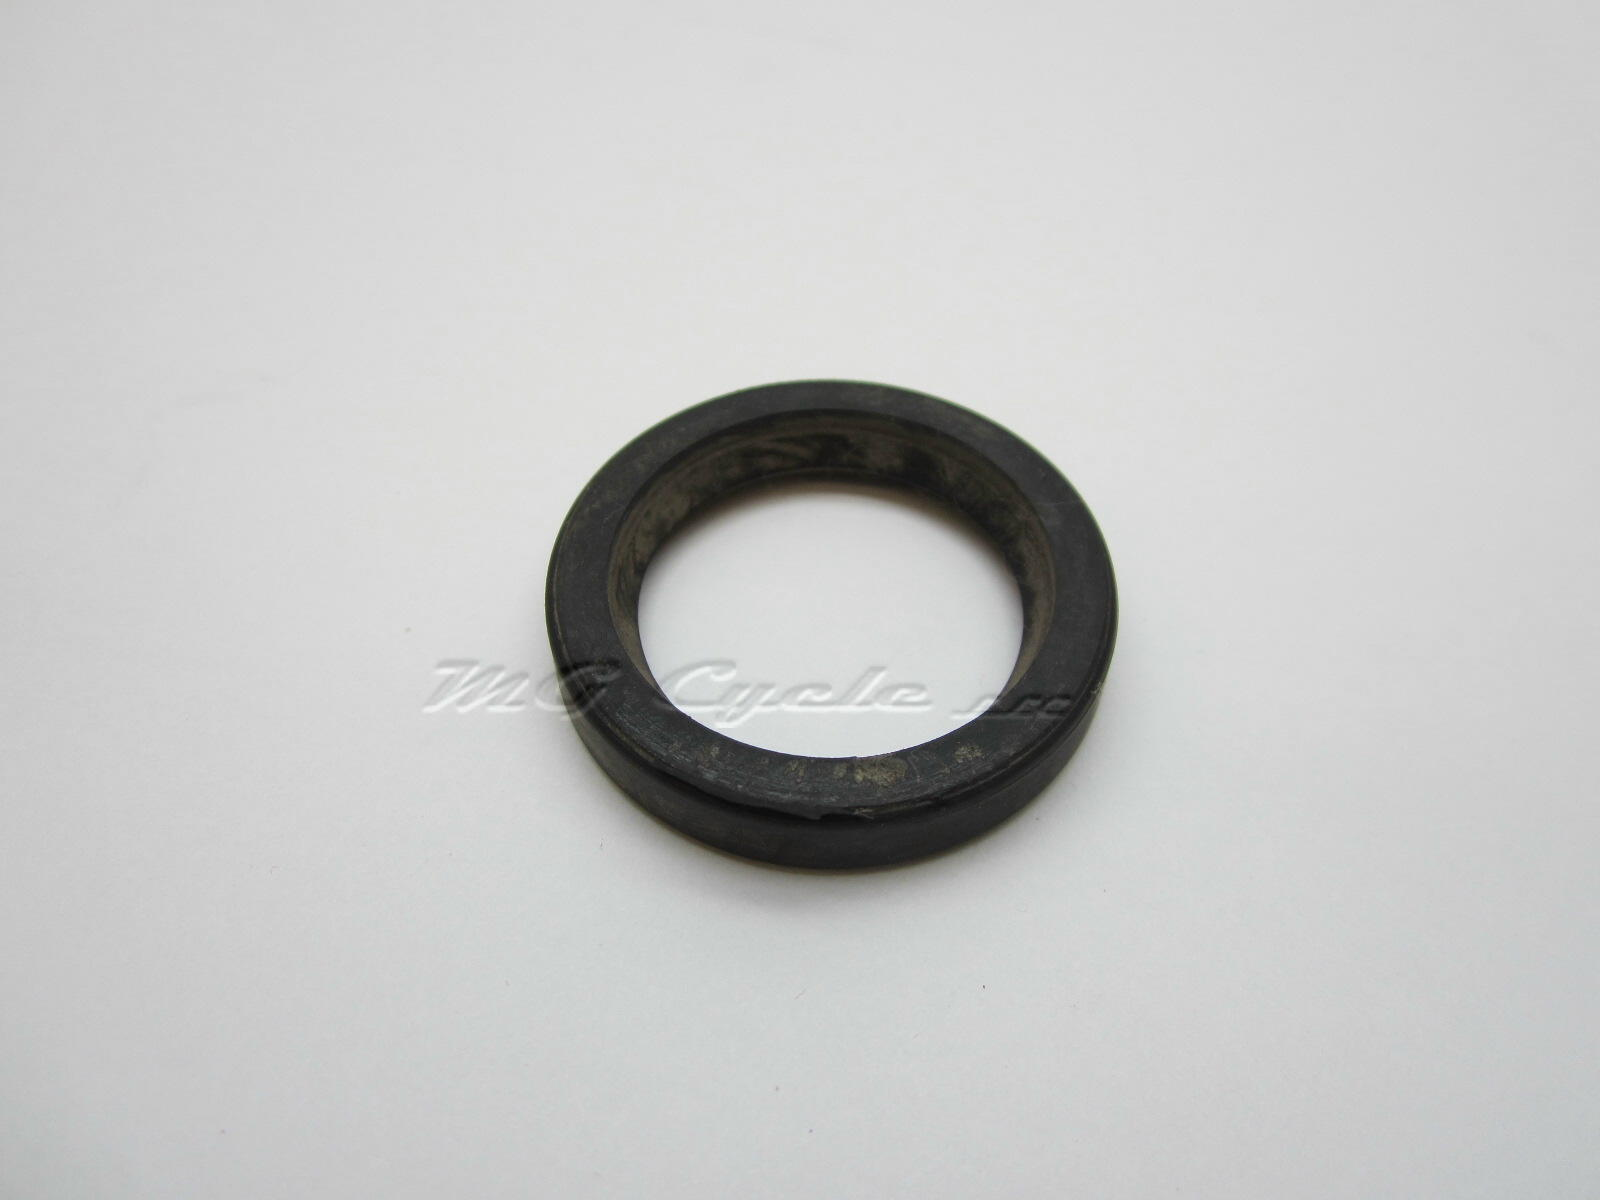 Transmission output seal, V35 V50 V50II, sub for input seal